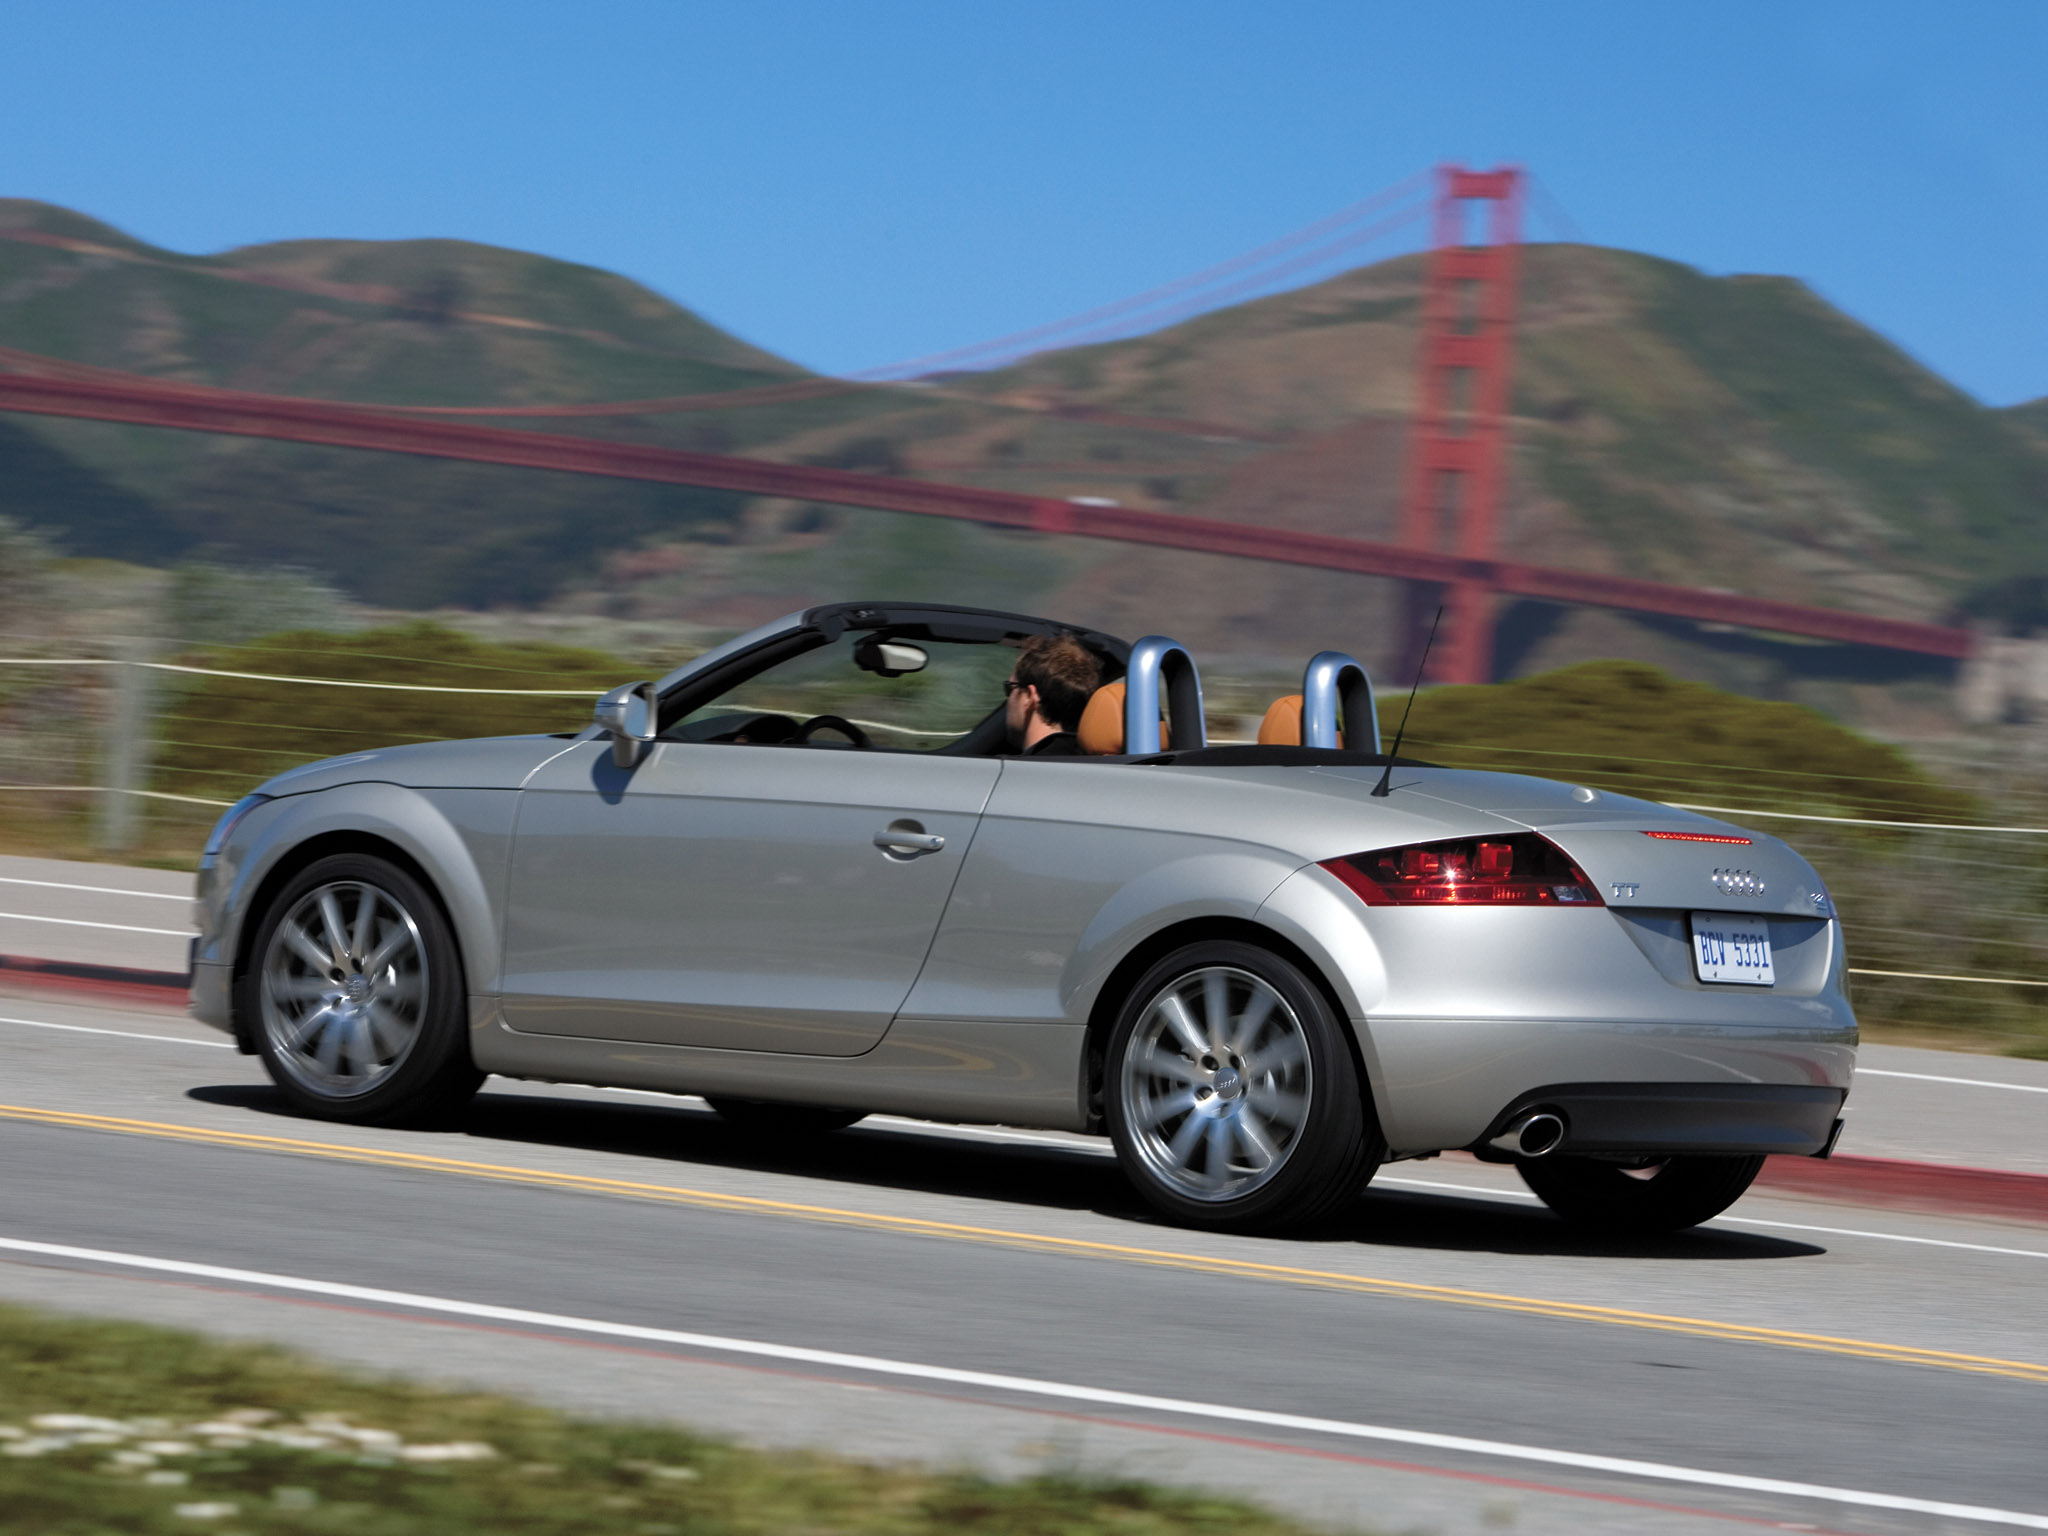 Audi Tt Roadster Usa 2007 Audi Tt Roadster Usa 2007 Photo